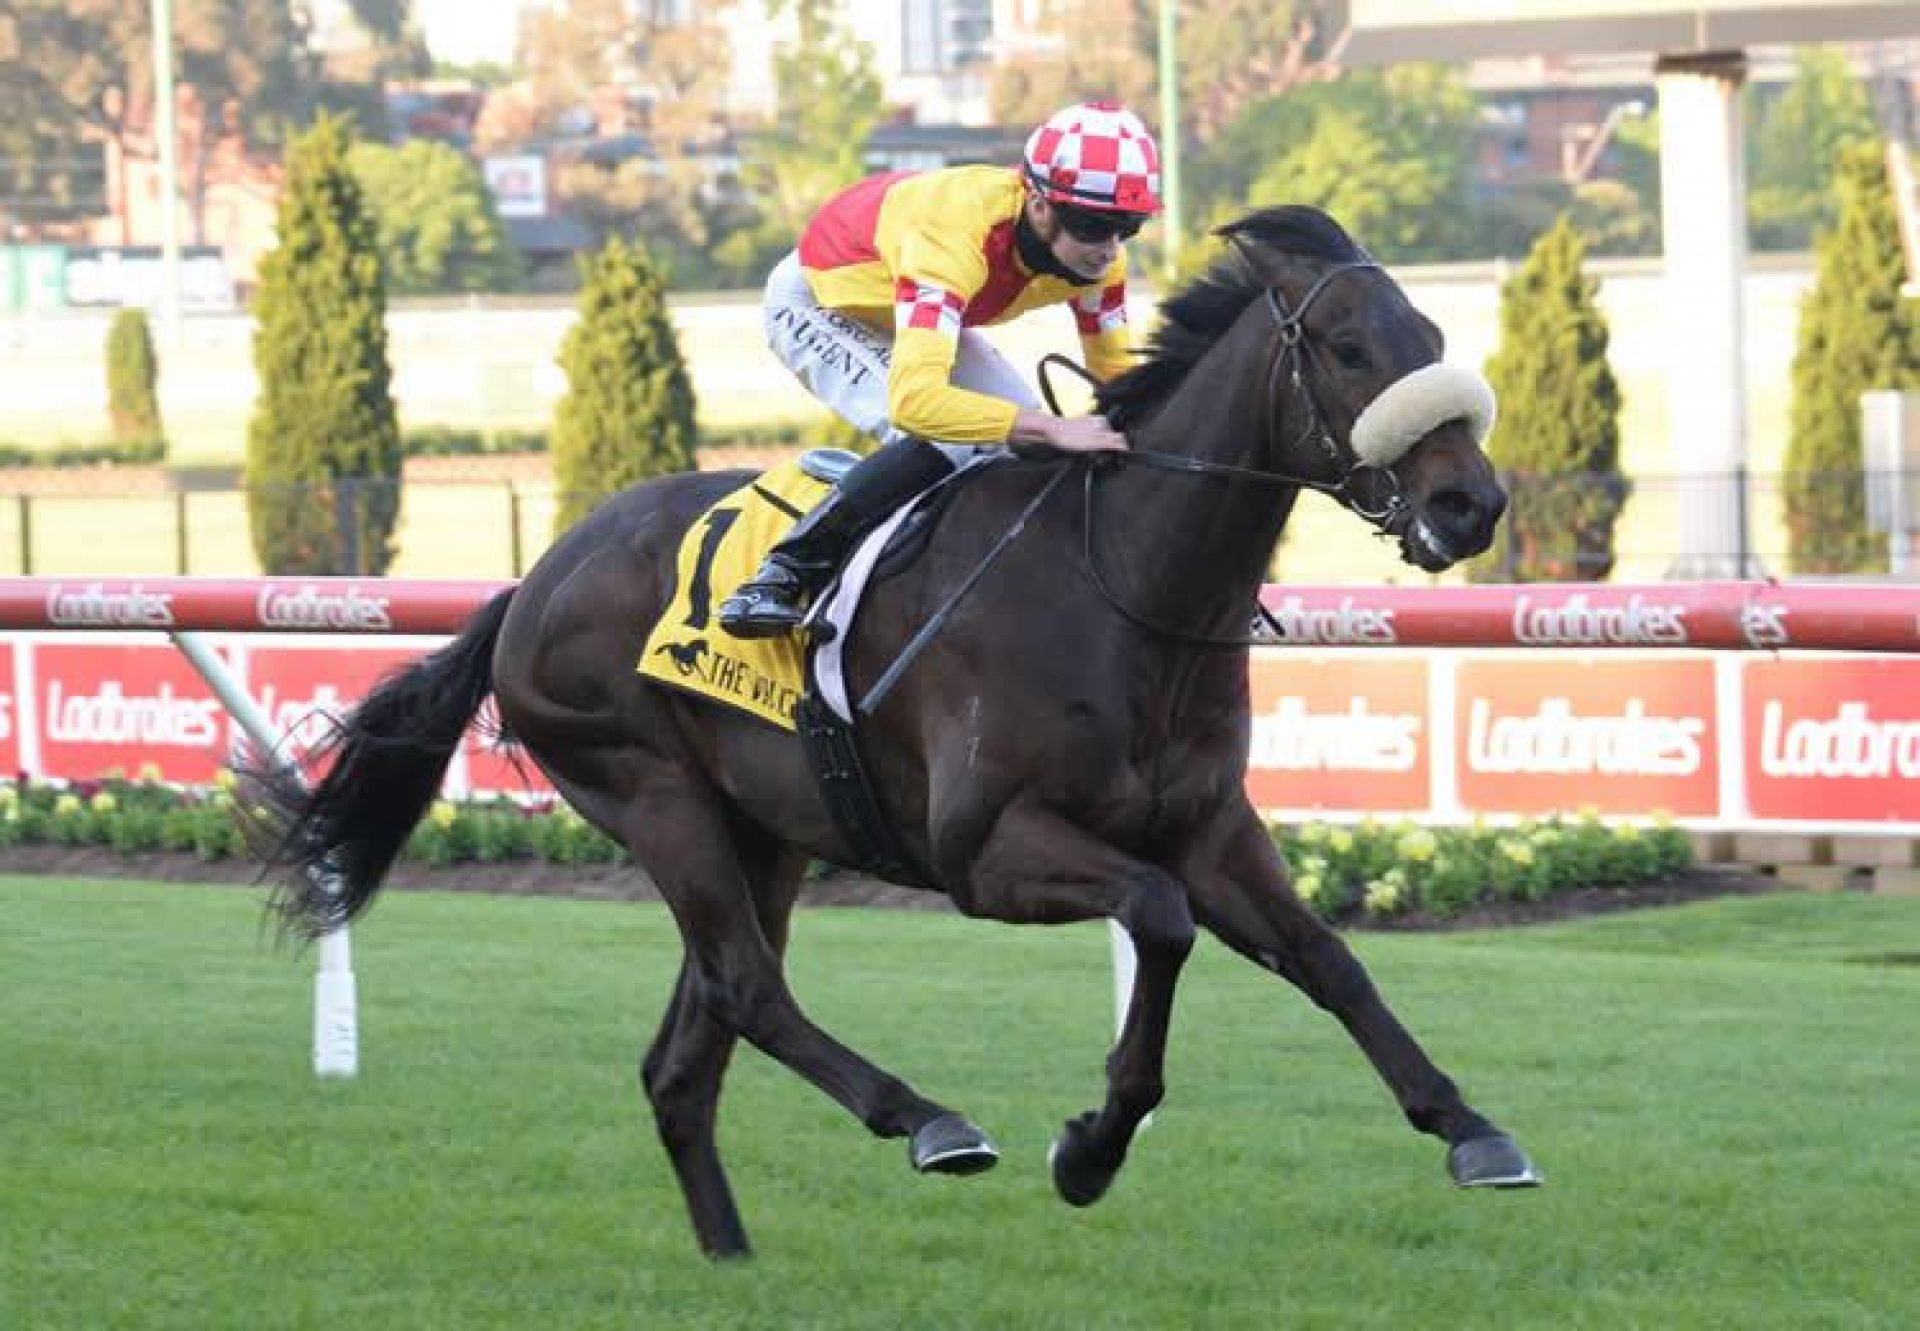 Tanker (Pride Of Dubai) winning at Moonee Valley